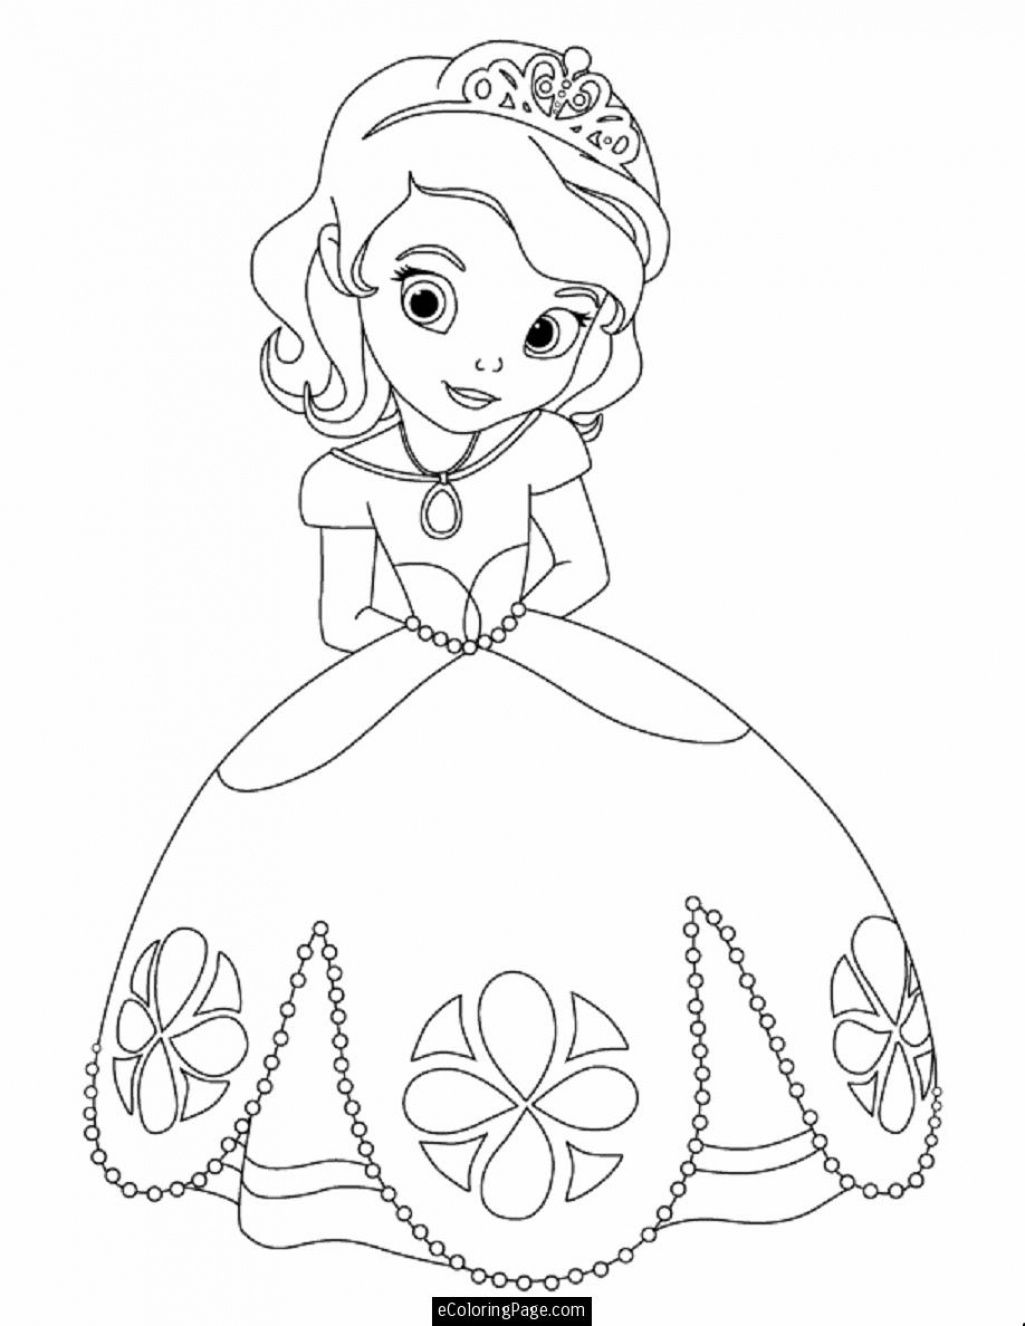 Disney Princess Ariel Coloring Pages Free Free Printable Disney ...